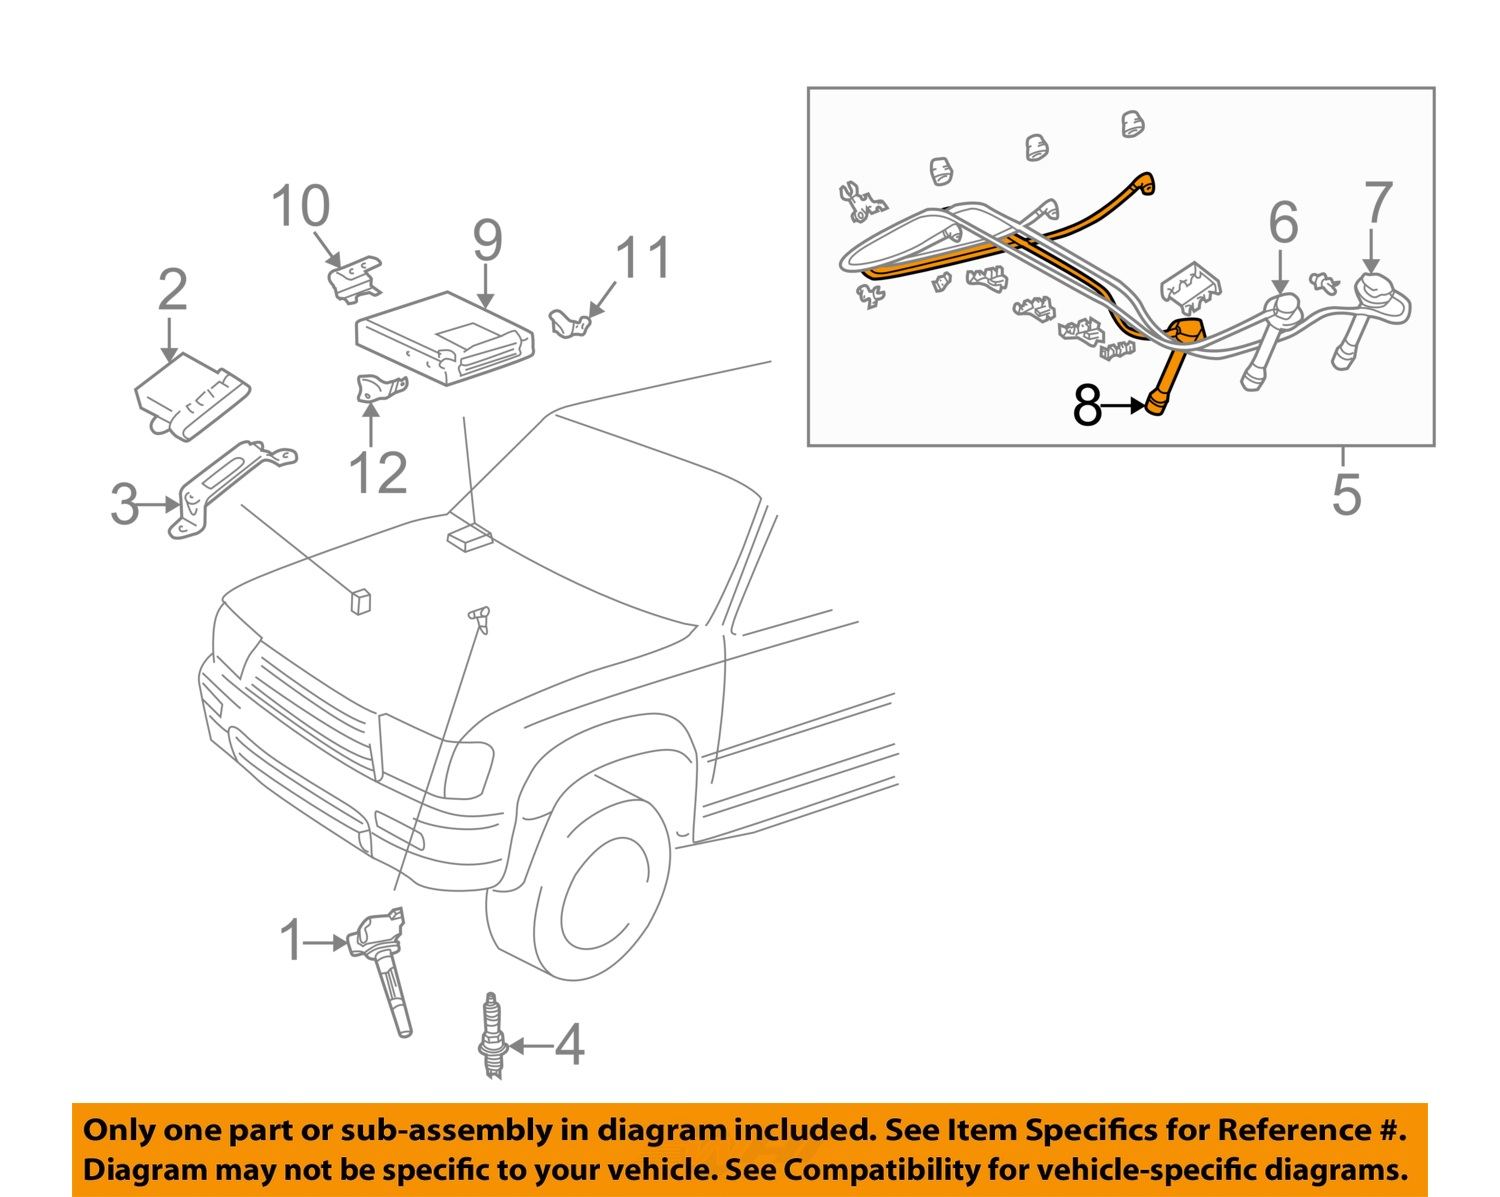 2006 5 7 Hemi Firing Order Diagram Wiring Diagrams For Dummies Chevy V8 4l Spark Plug Get Free Image About Dodge 39 235